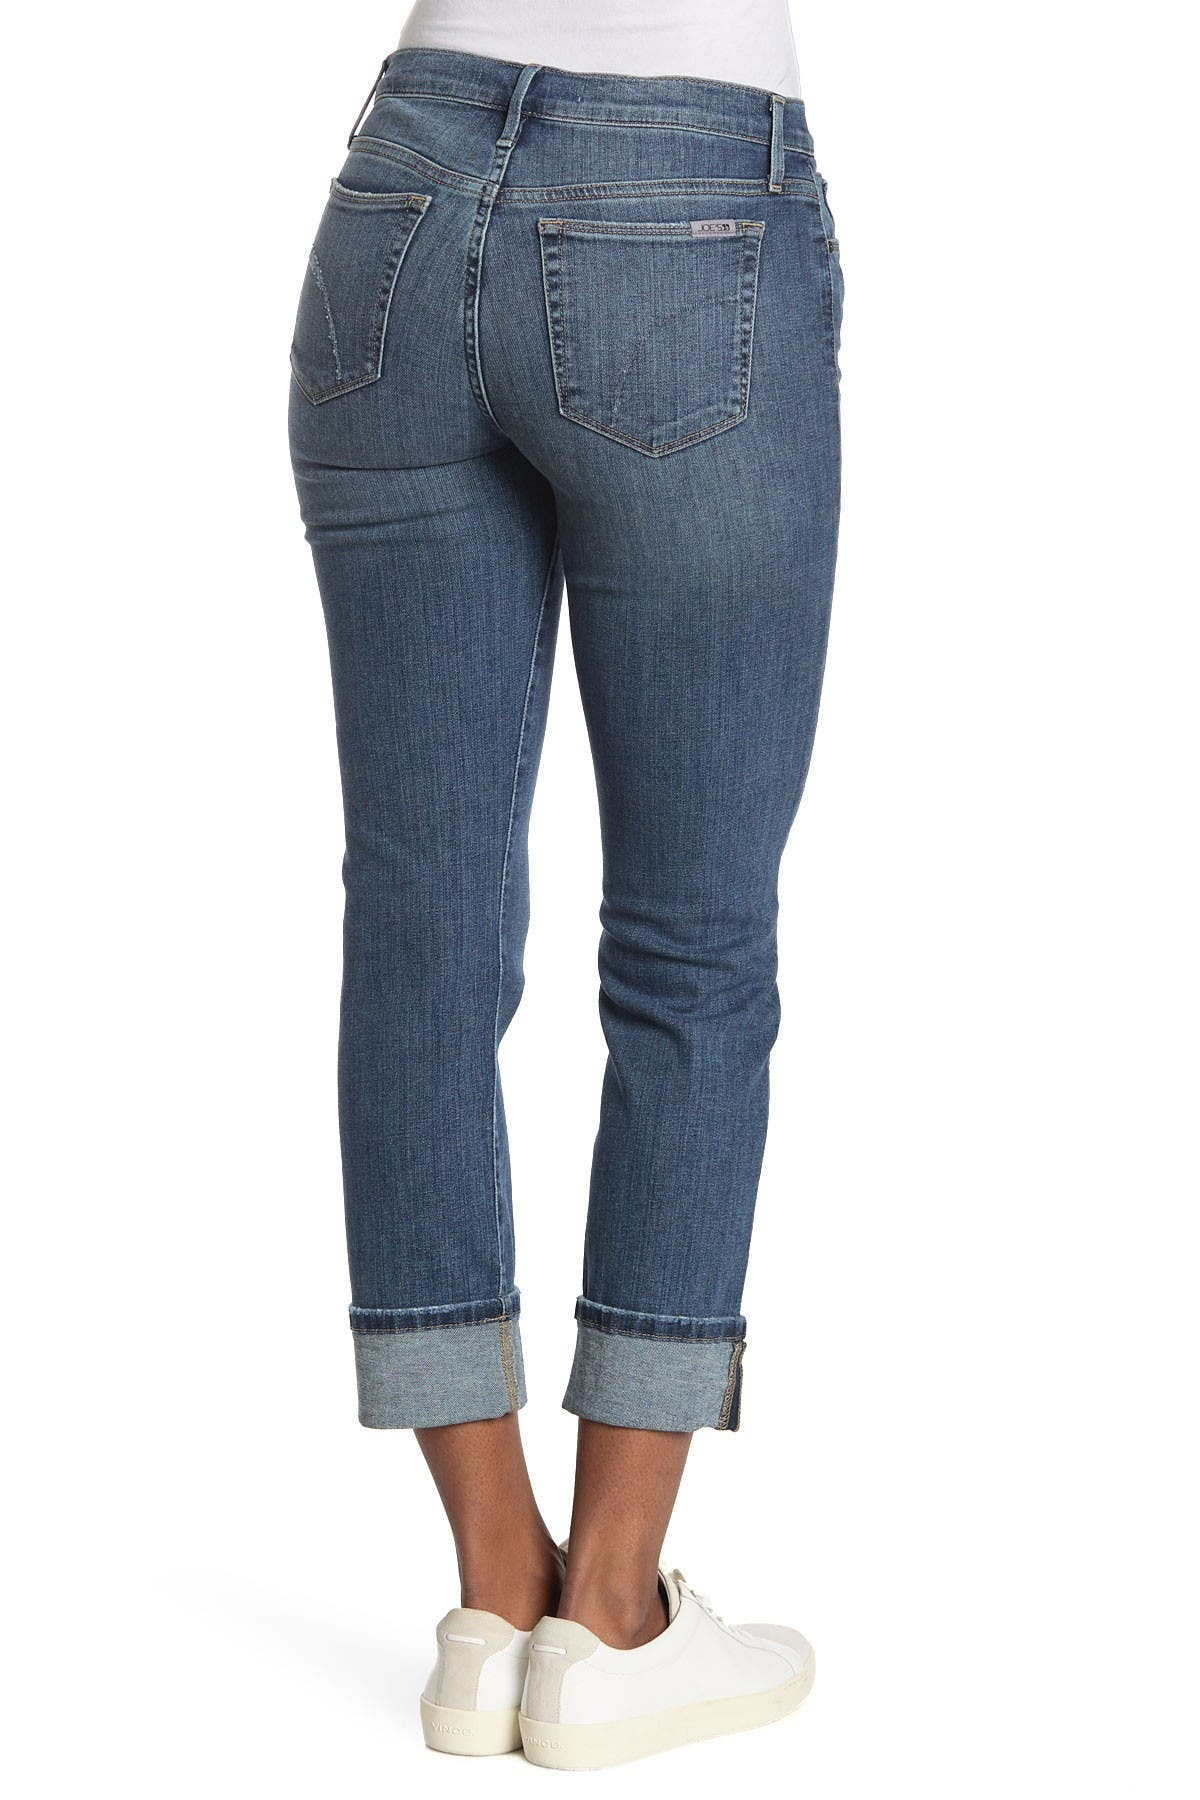 Image of Joe's Jeans Mid Rise Crop Straight Leg Jeans